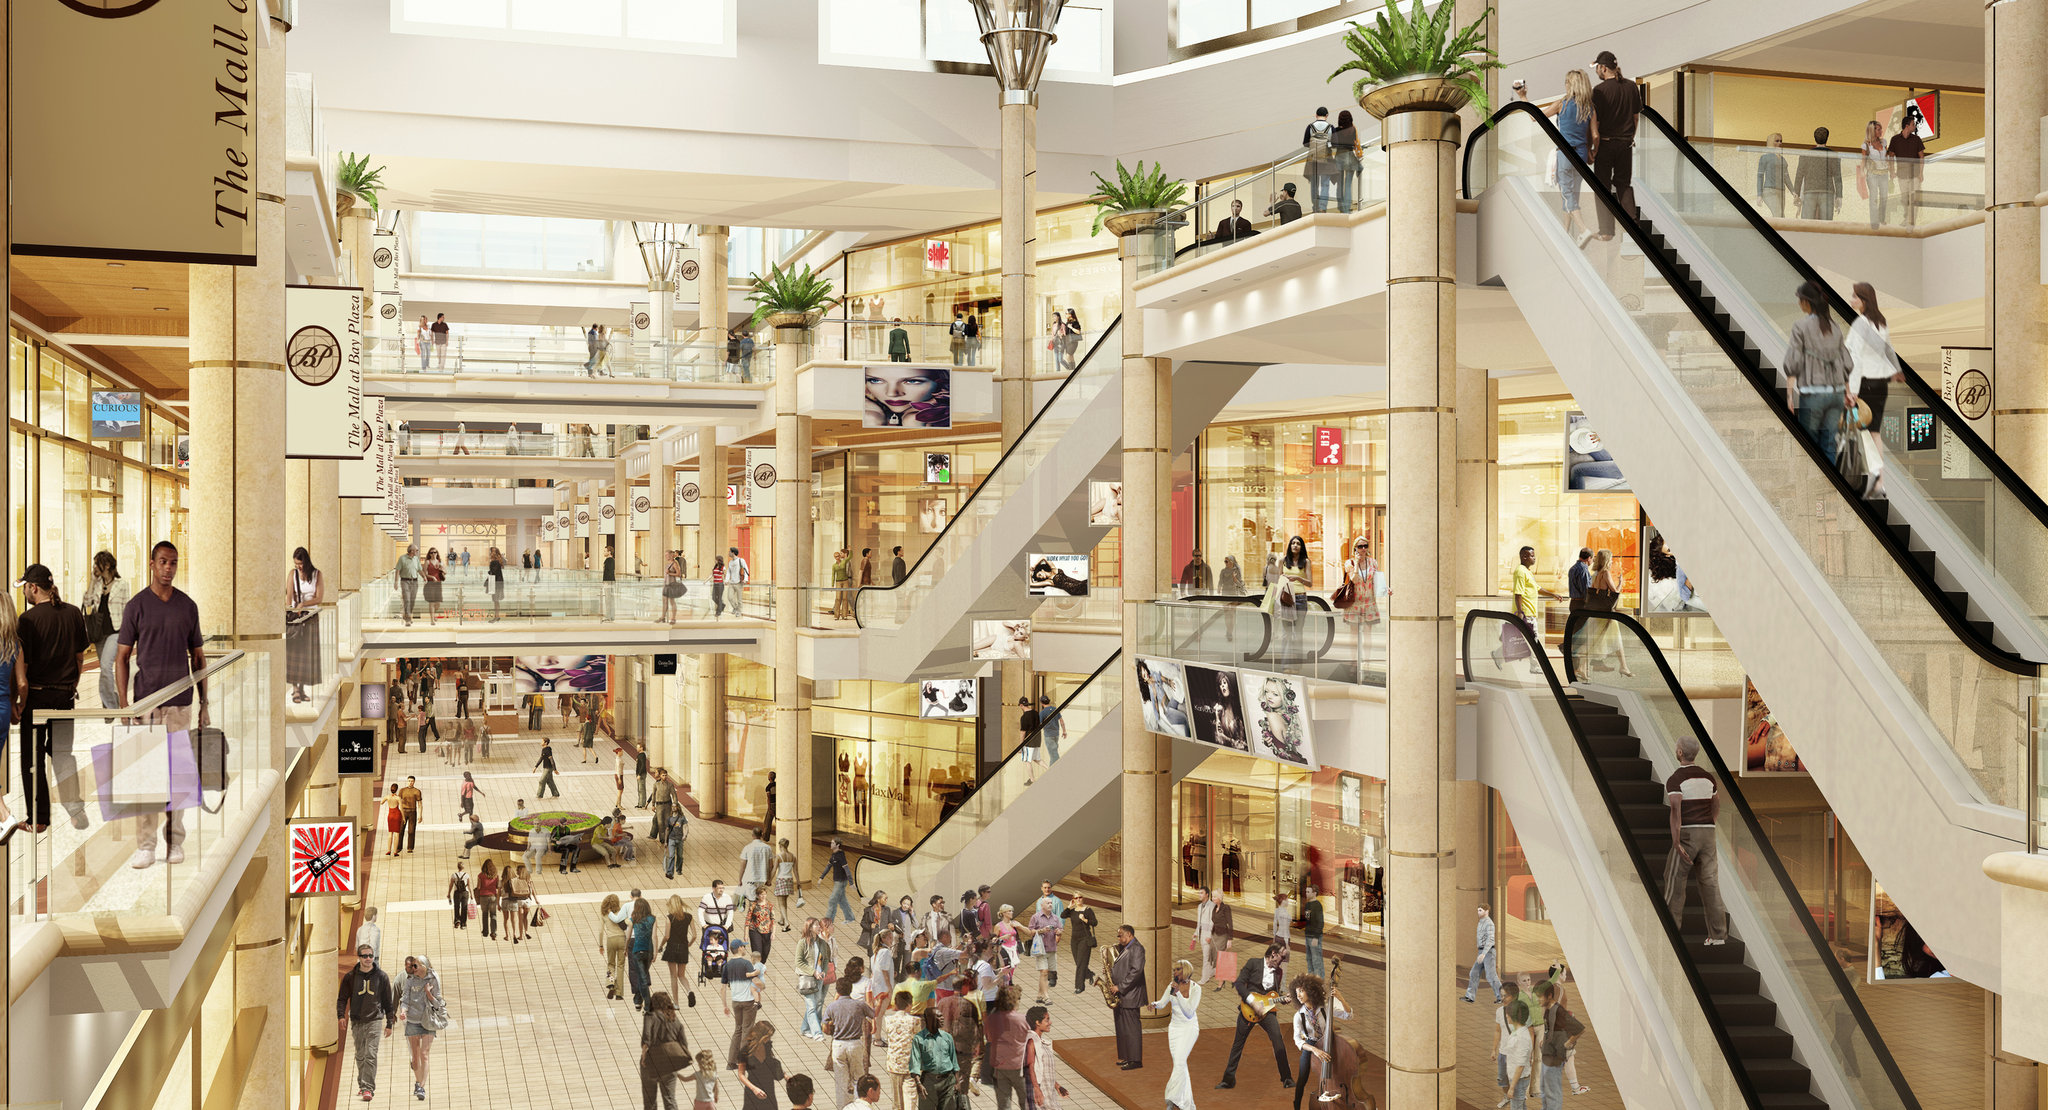 New York Developers To Build Suburbanstyle Mall In The